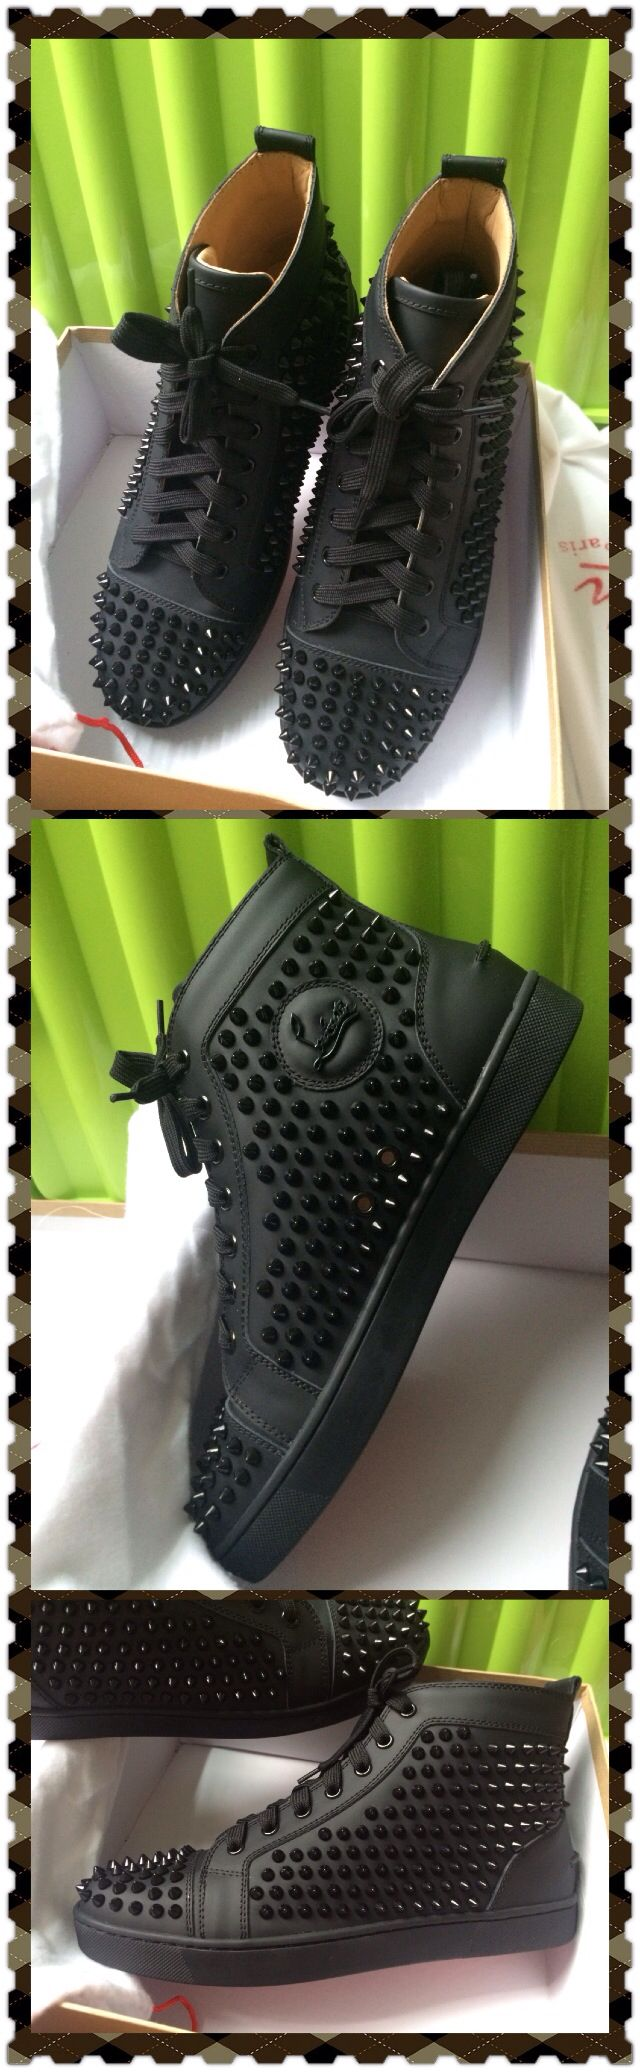 Christian louboutin on sale, 2014 new model, size 35-46, best quality with authentic leather, spikes and soles, $280 include shipping cost to USA , Europe. Contact me to buy please. gumarstrade@gmail.com